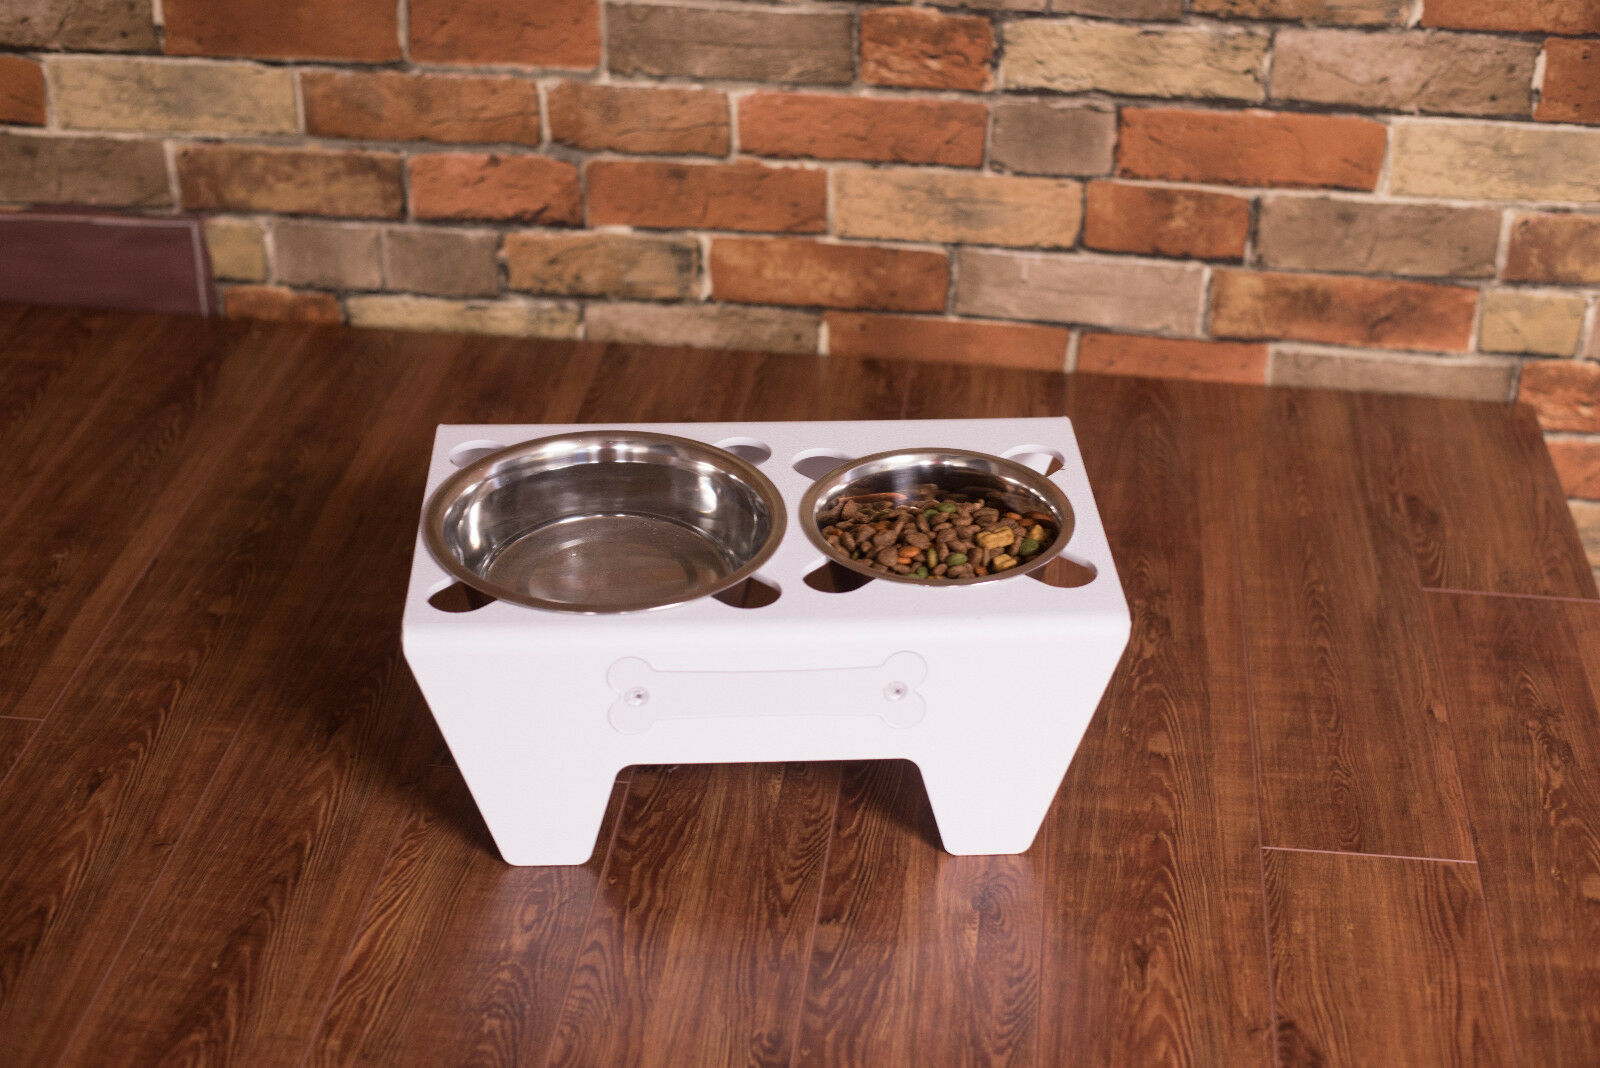 24 SETS Sips-n-Nibbles PET FOOD FOOD FOOD AND WATER DISH CAT DOG MICH MADE special order 4f74e3